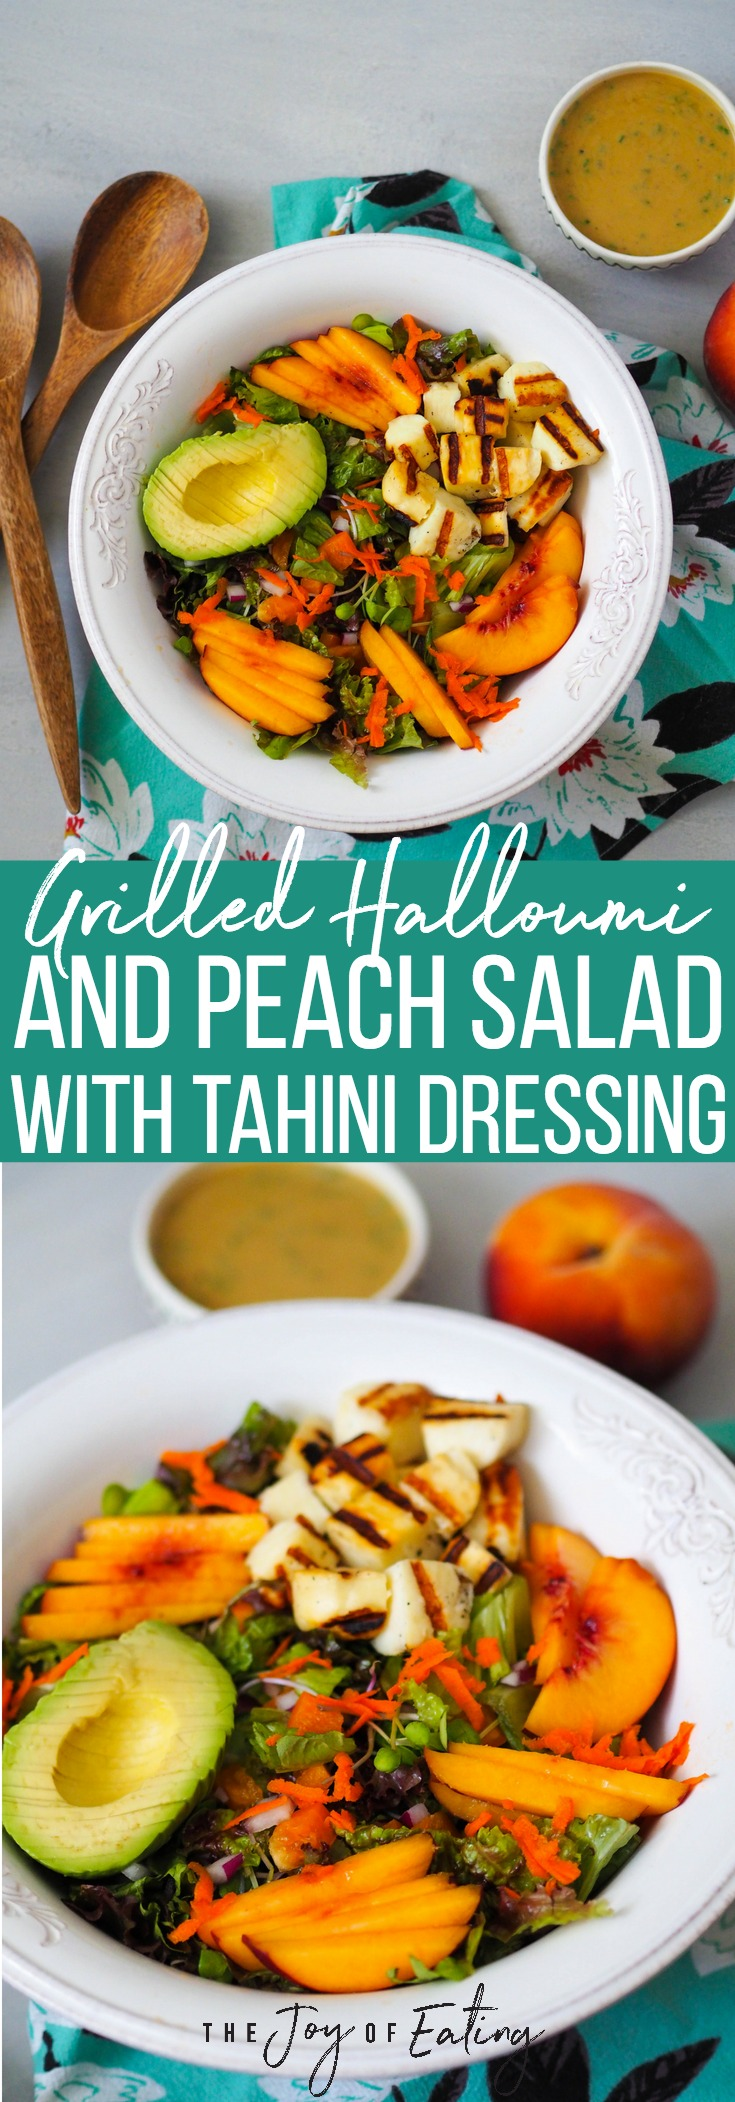 This summer grilled halloumi and peach salad with lemon-tahini dressing is so easy to make! #vegetarian #healthyrecipe #peach #halloumi #glutenfree #summer